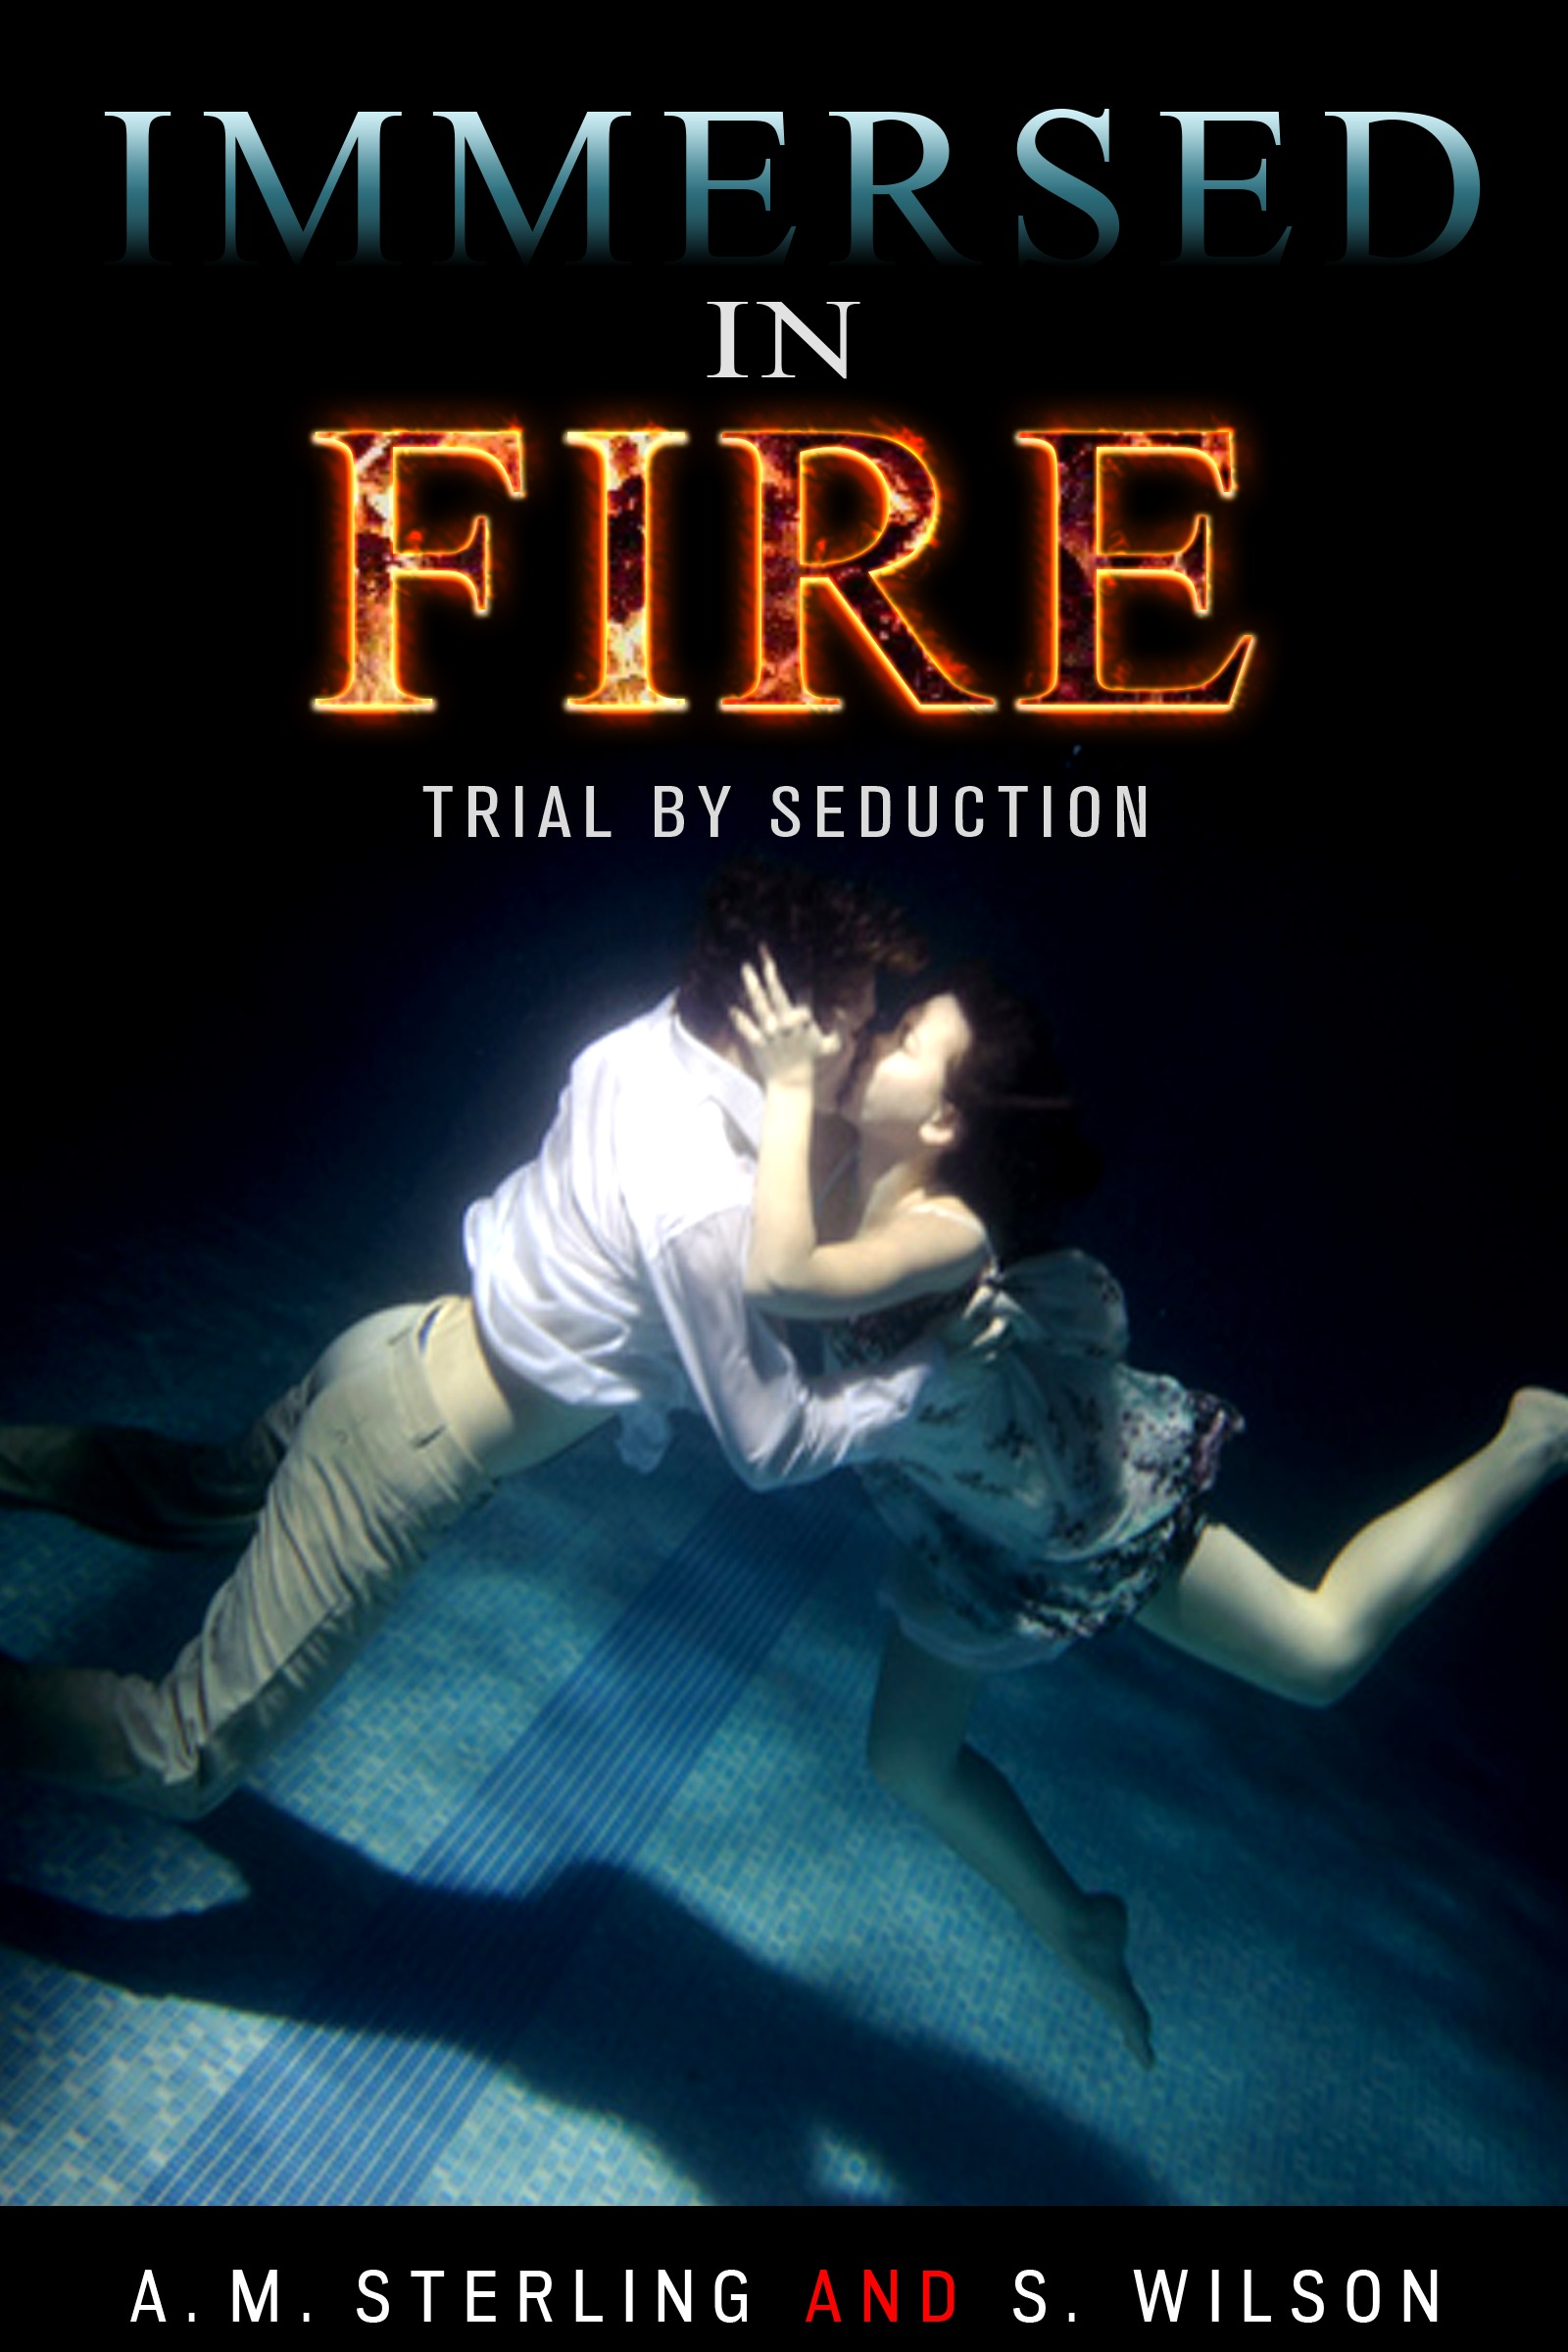 Immersed in Fire: Trial Seduction by A.M. Sterling